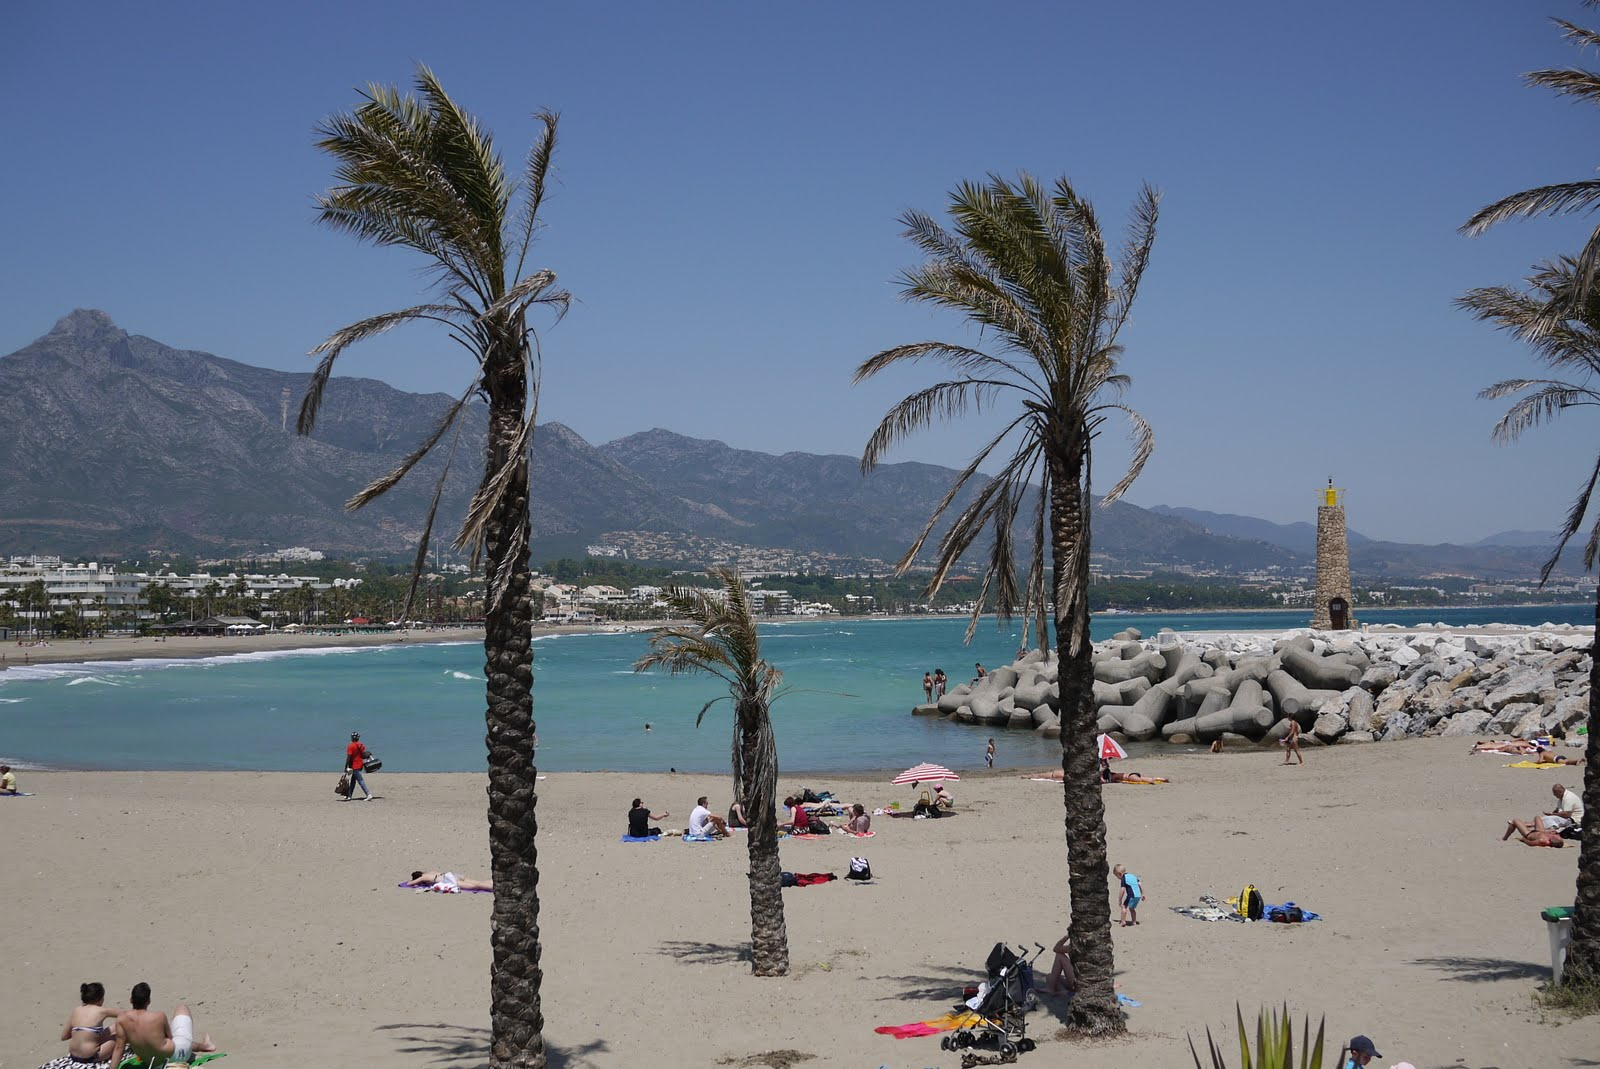 In contrast to Puerto Banus,